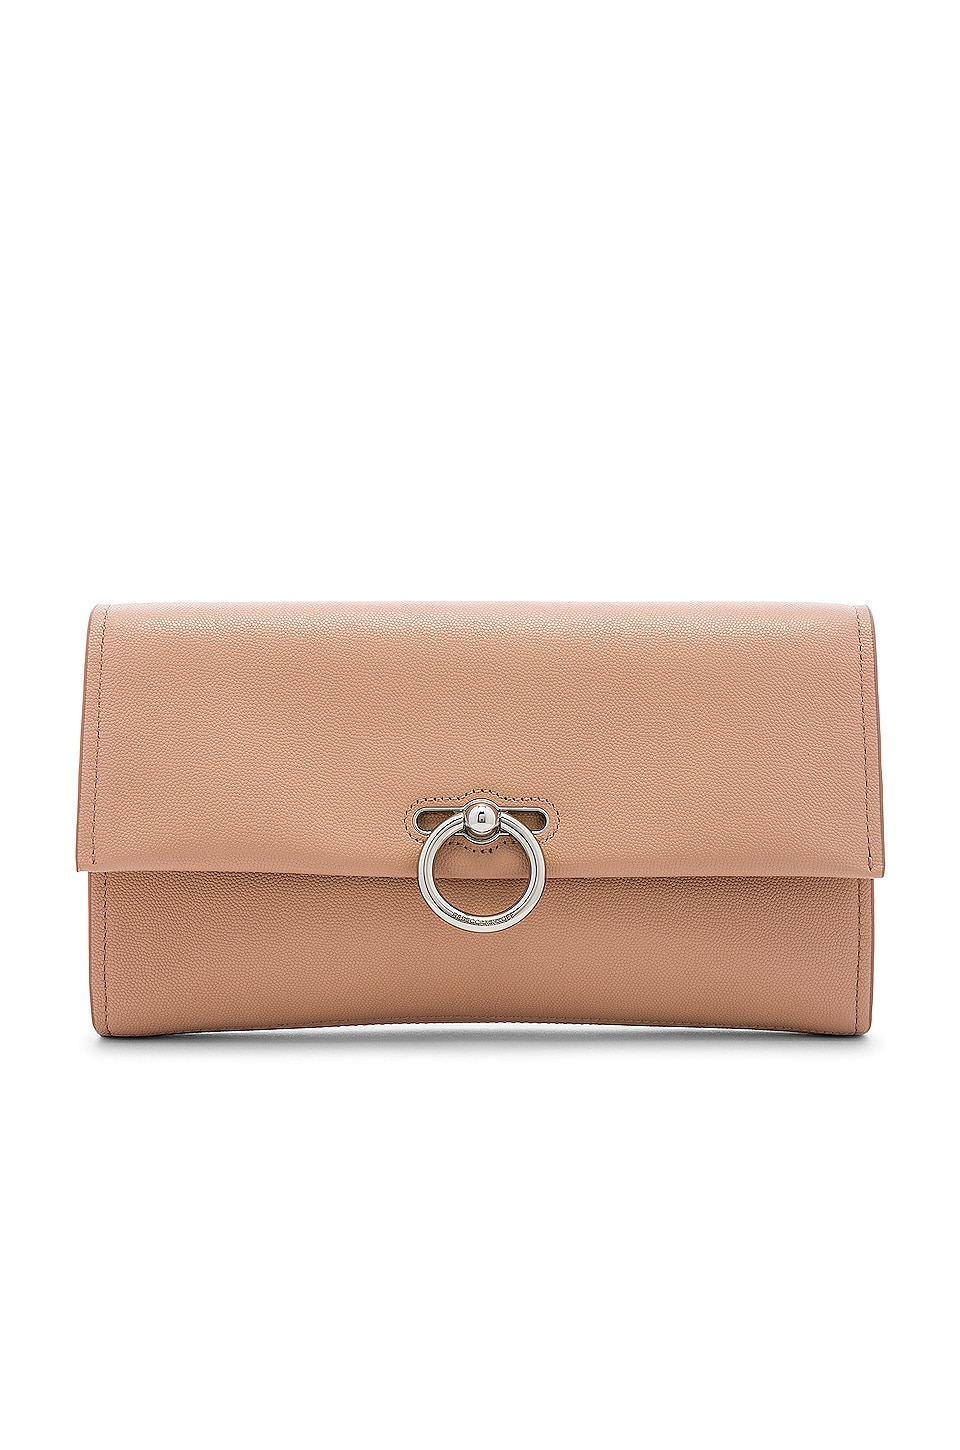 Rebecca Minkoff Jean Clutch in Doe